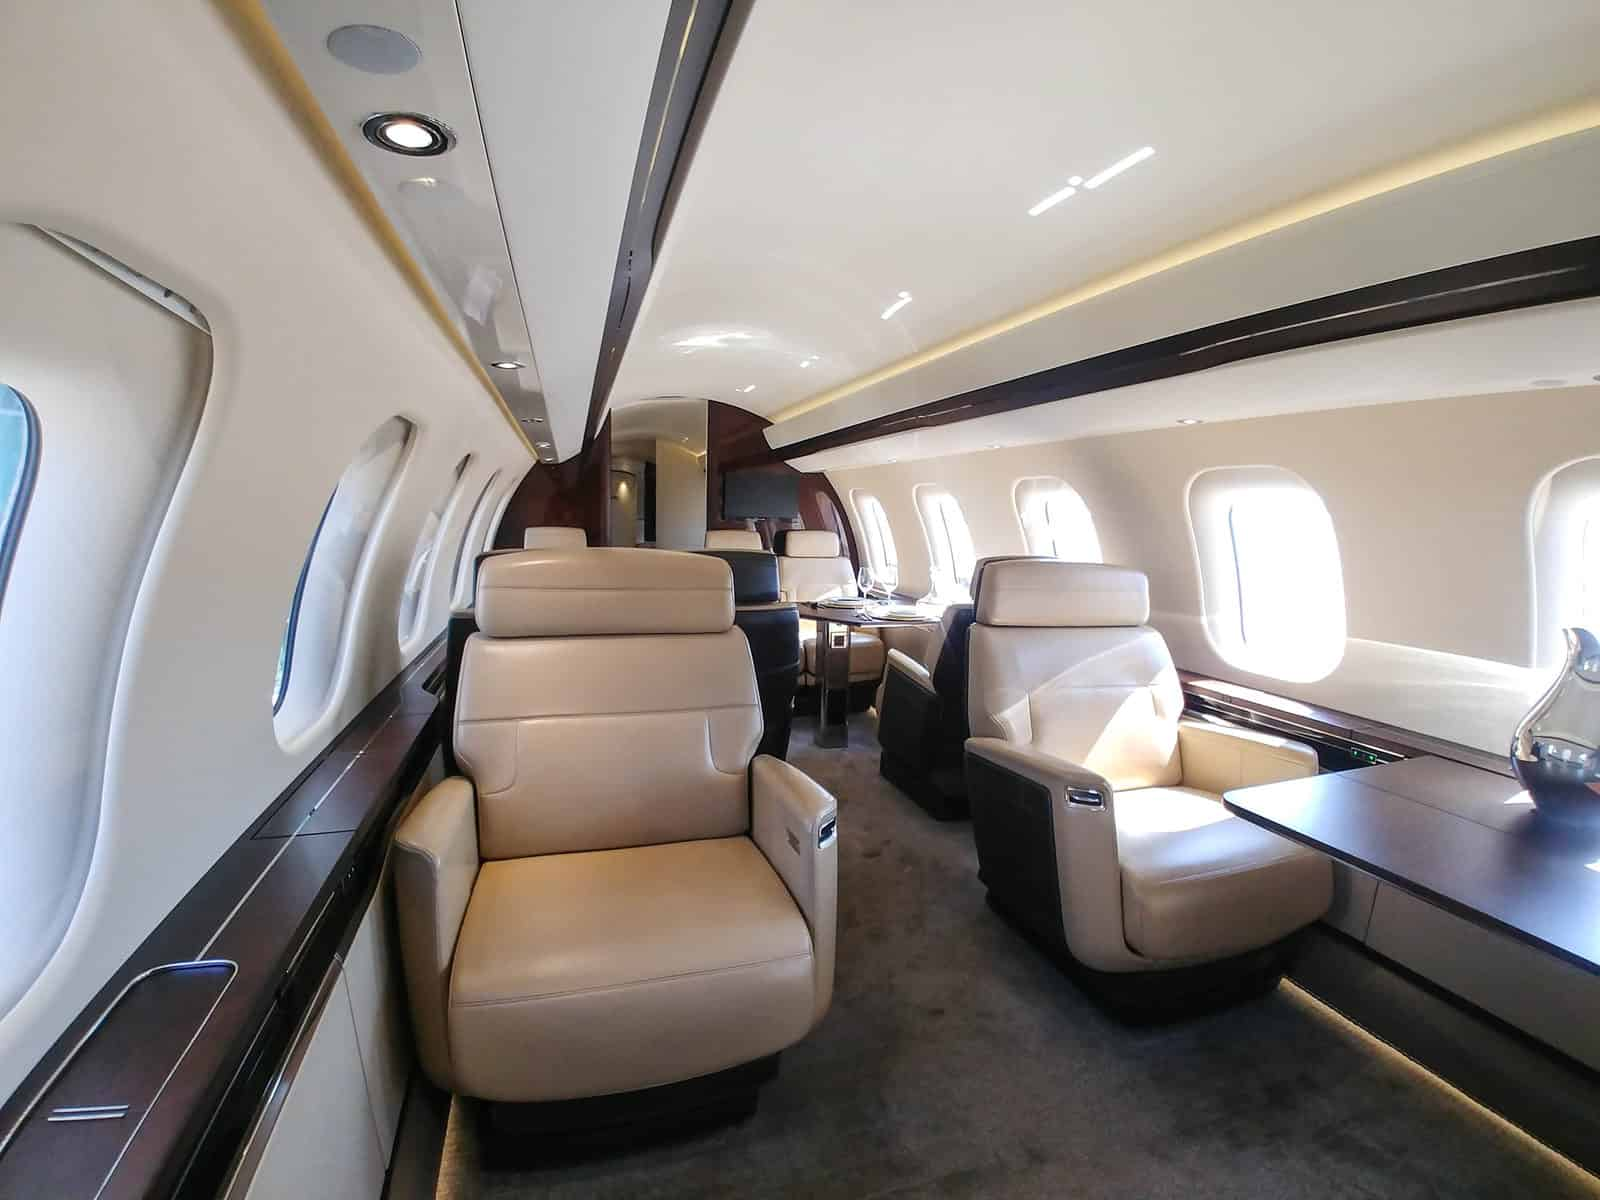 Bombardier Global 7500 main cabin